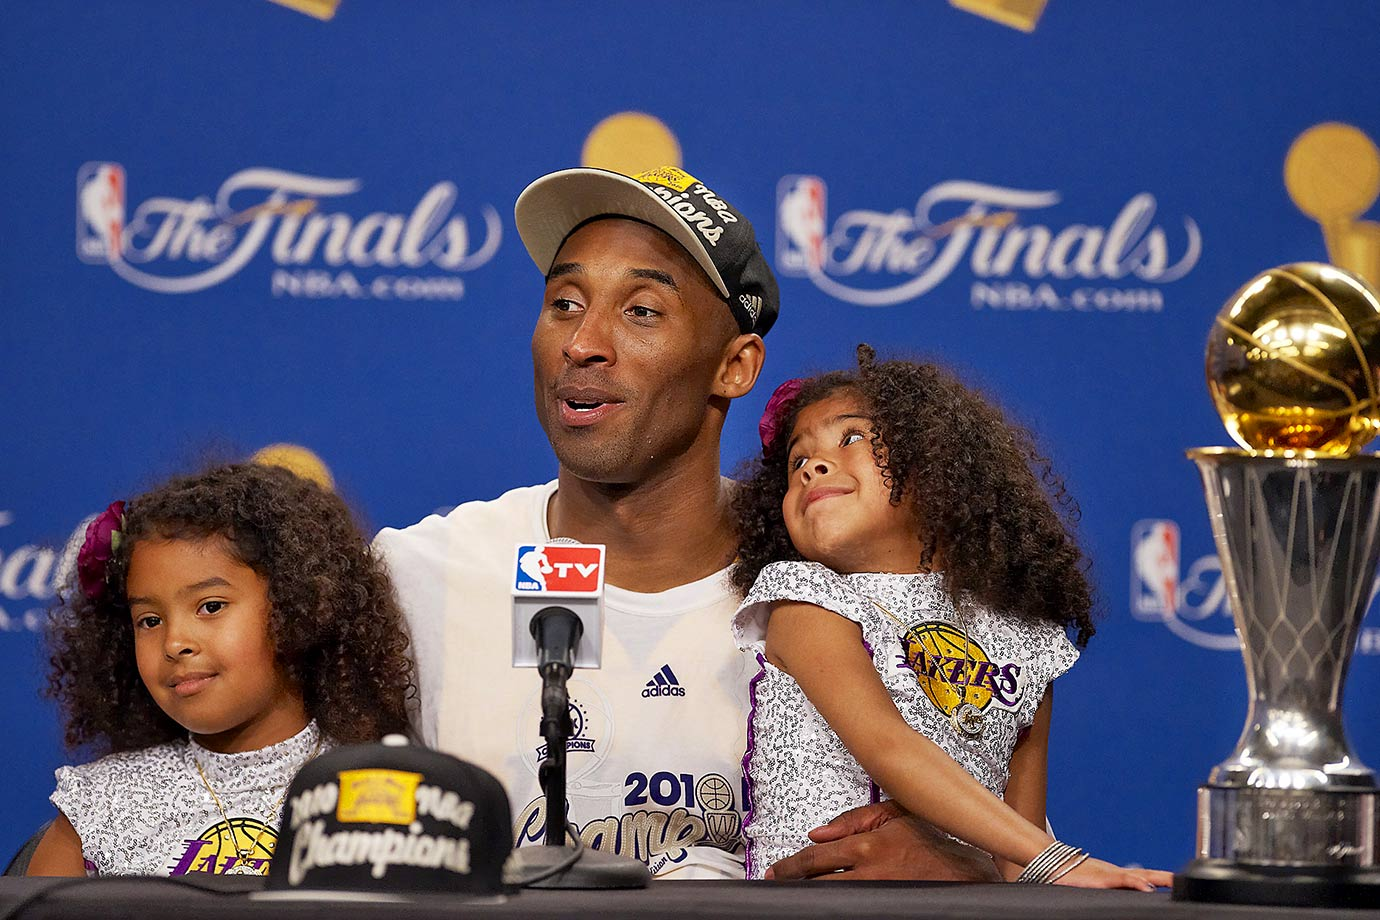 Kobe Bryant and daughters Natalia and Gianna